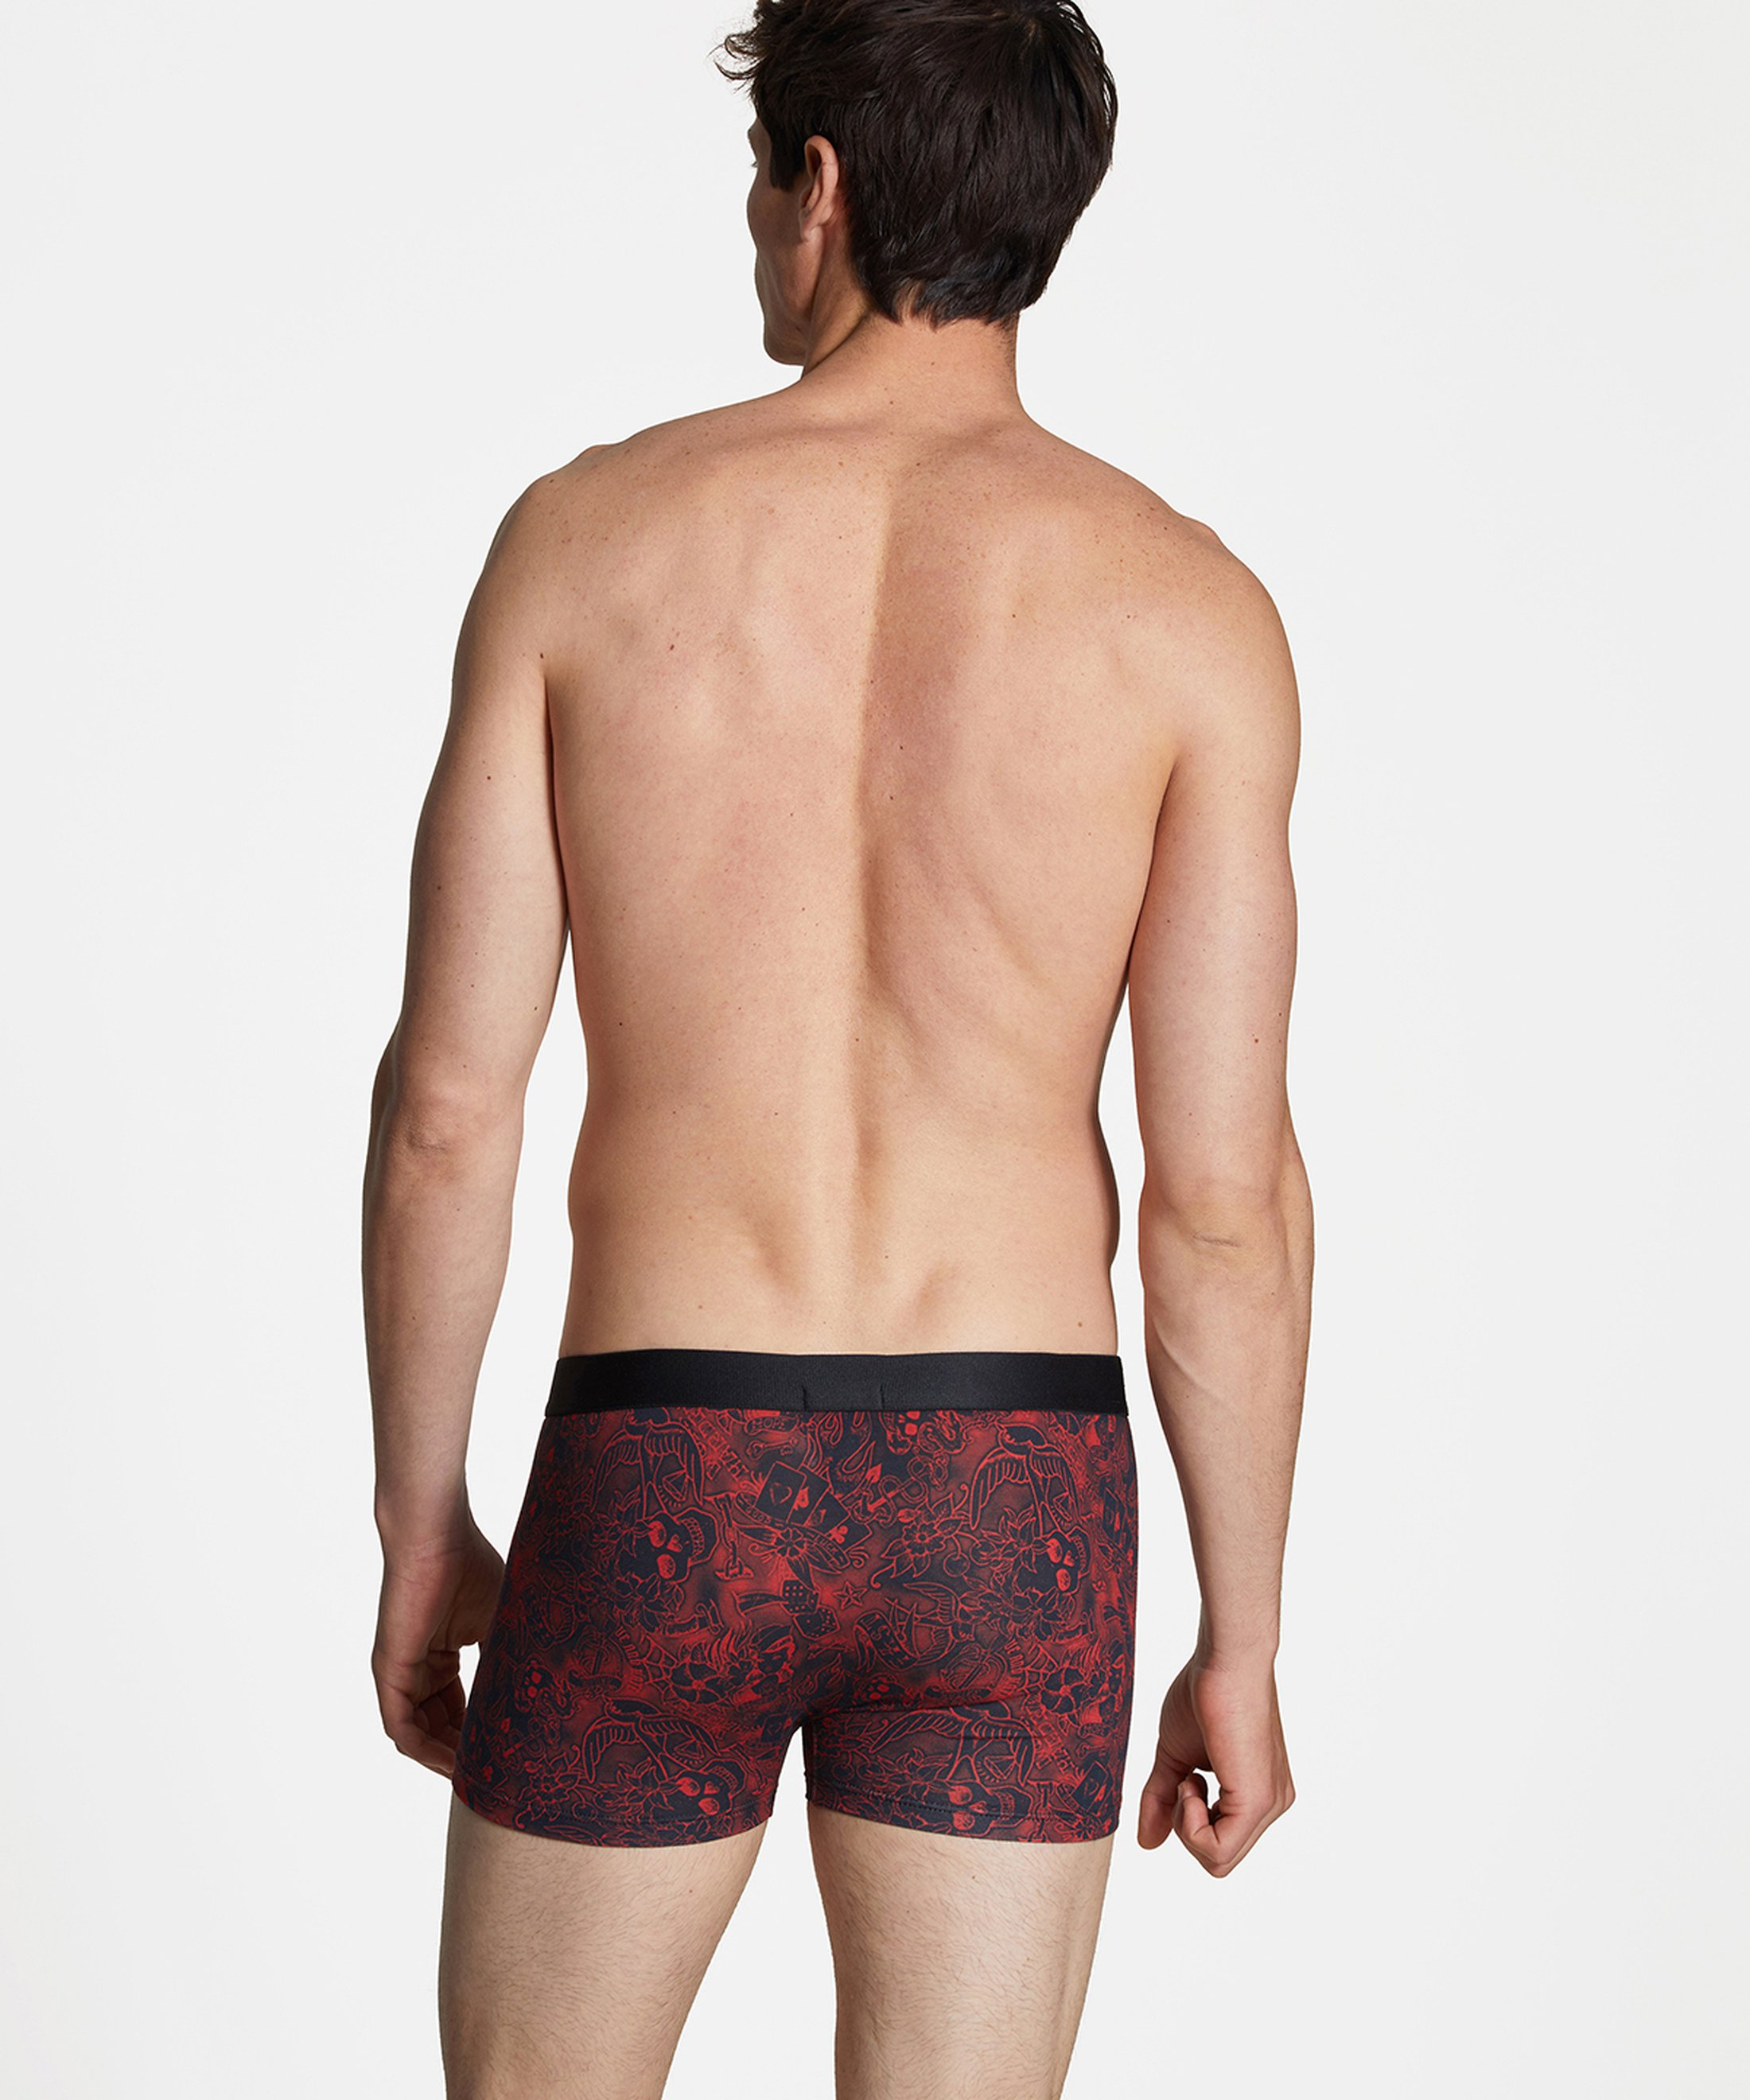 AUBADE HOMME Boxer homme Old Tattoo Rouge | Aubade